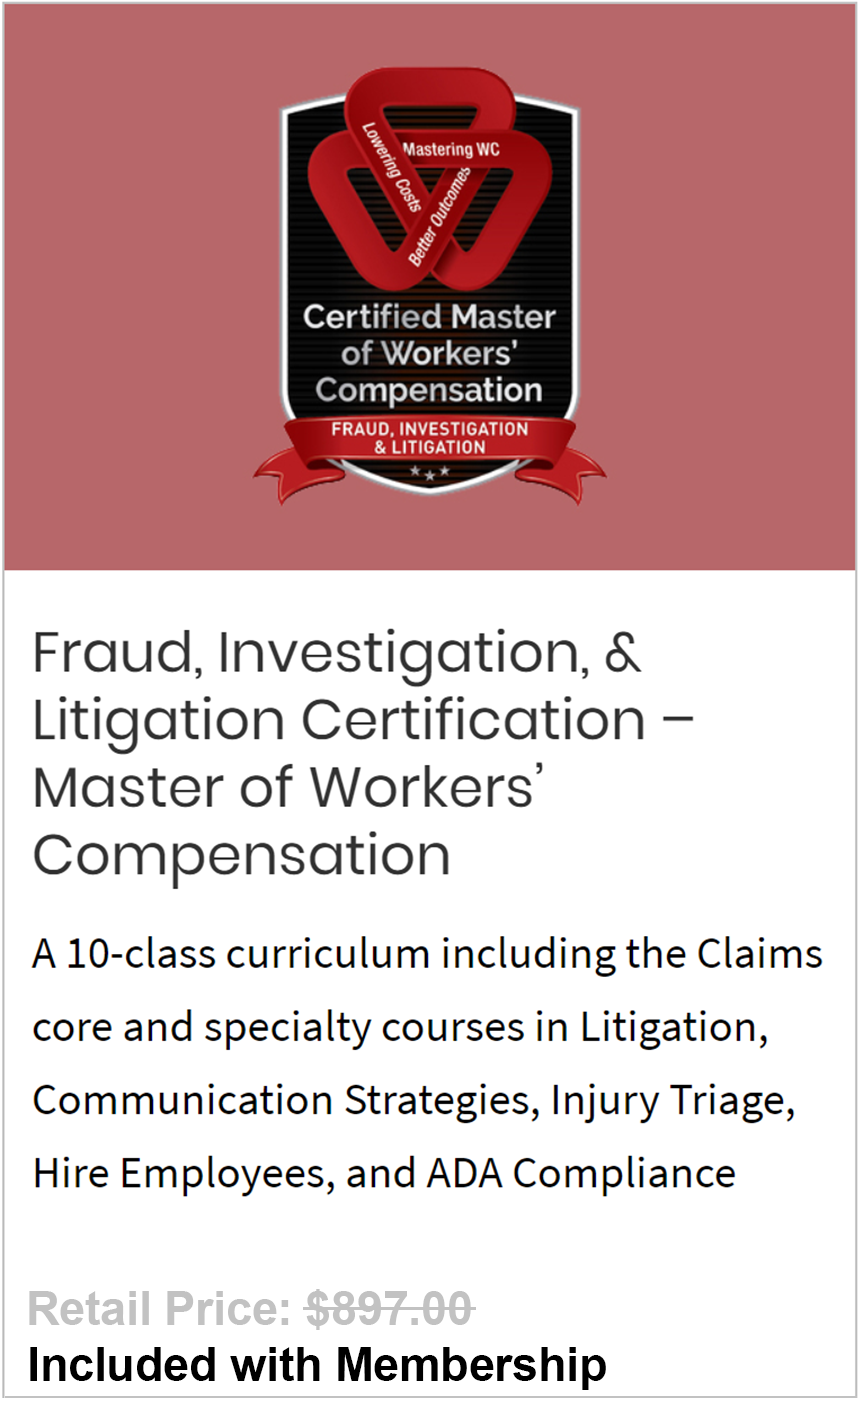 Fraud, Investigation, & Litigation Certification – Master of Workers' Compensation